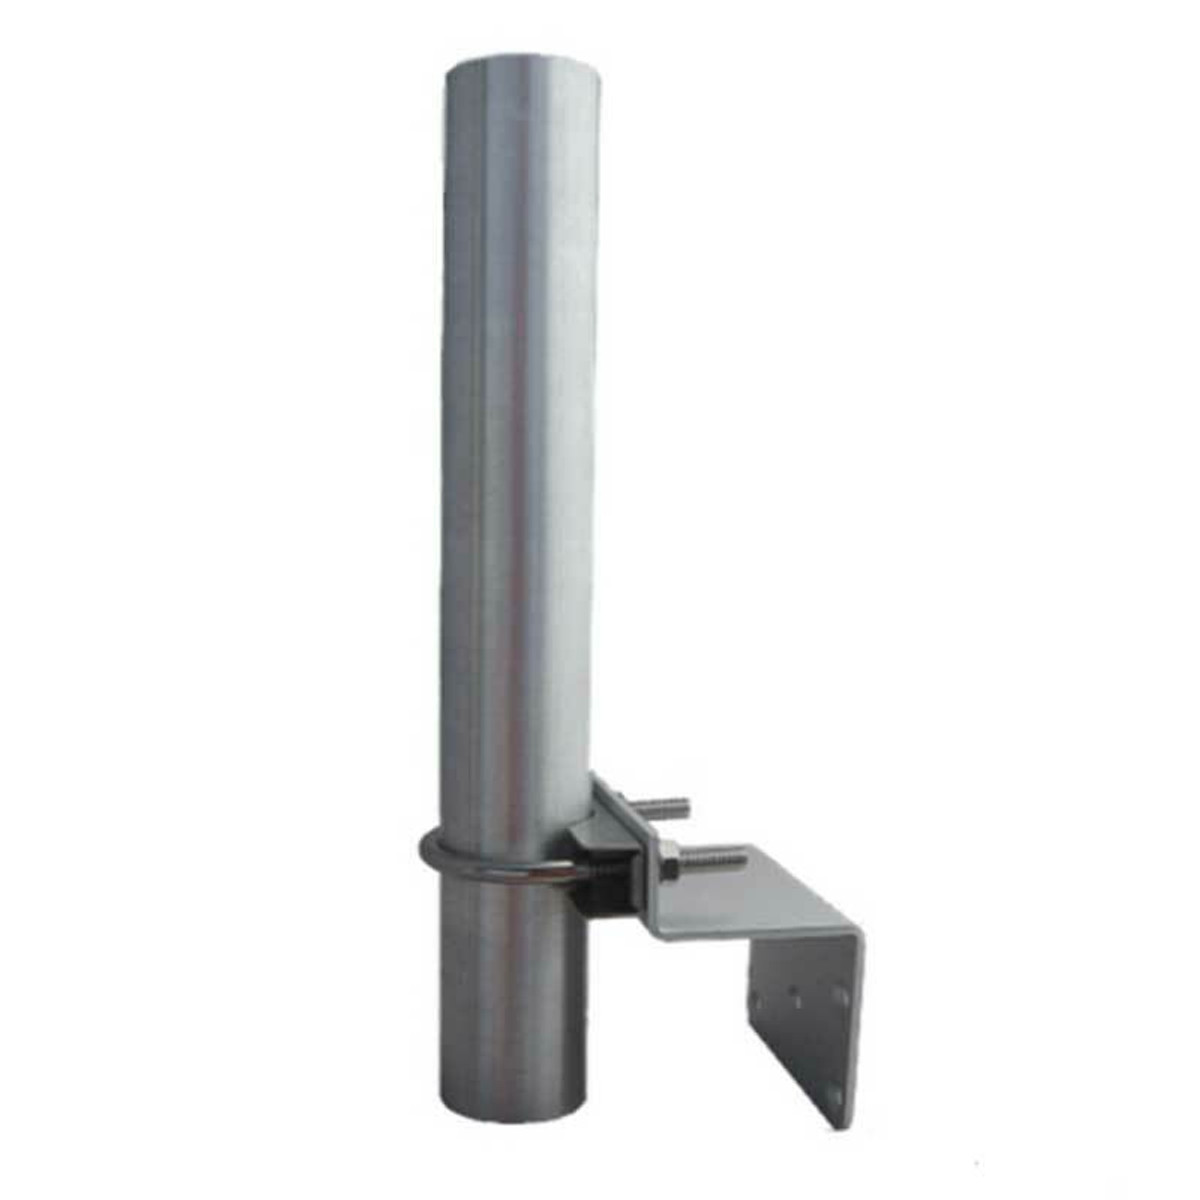 Wilson Electronics weBoost Wilson 901117 Pole Mounting Assembly for Outdoor Antennas